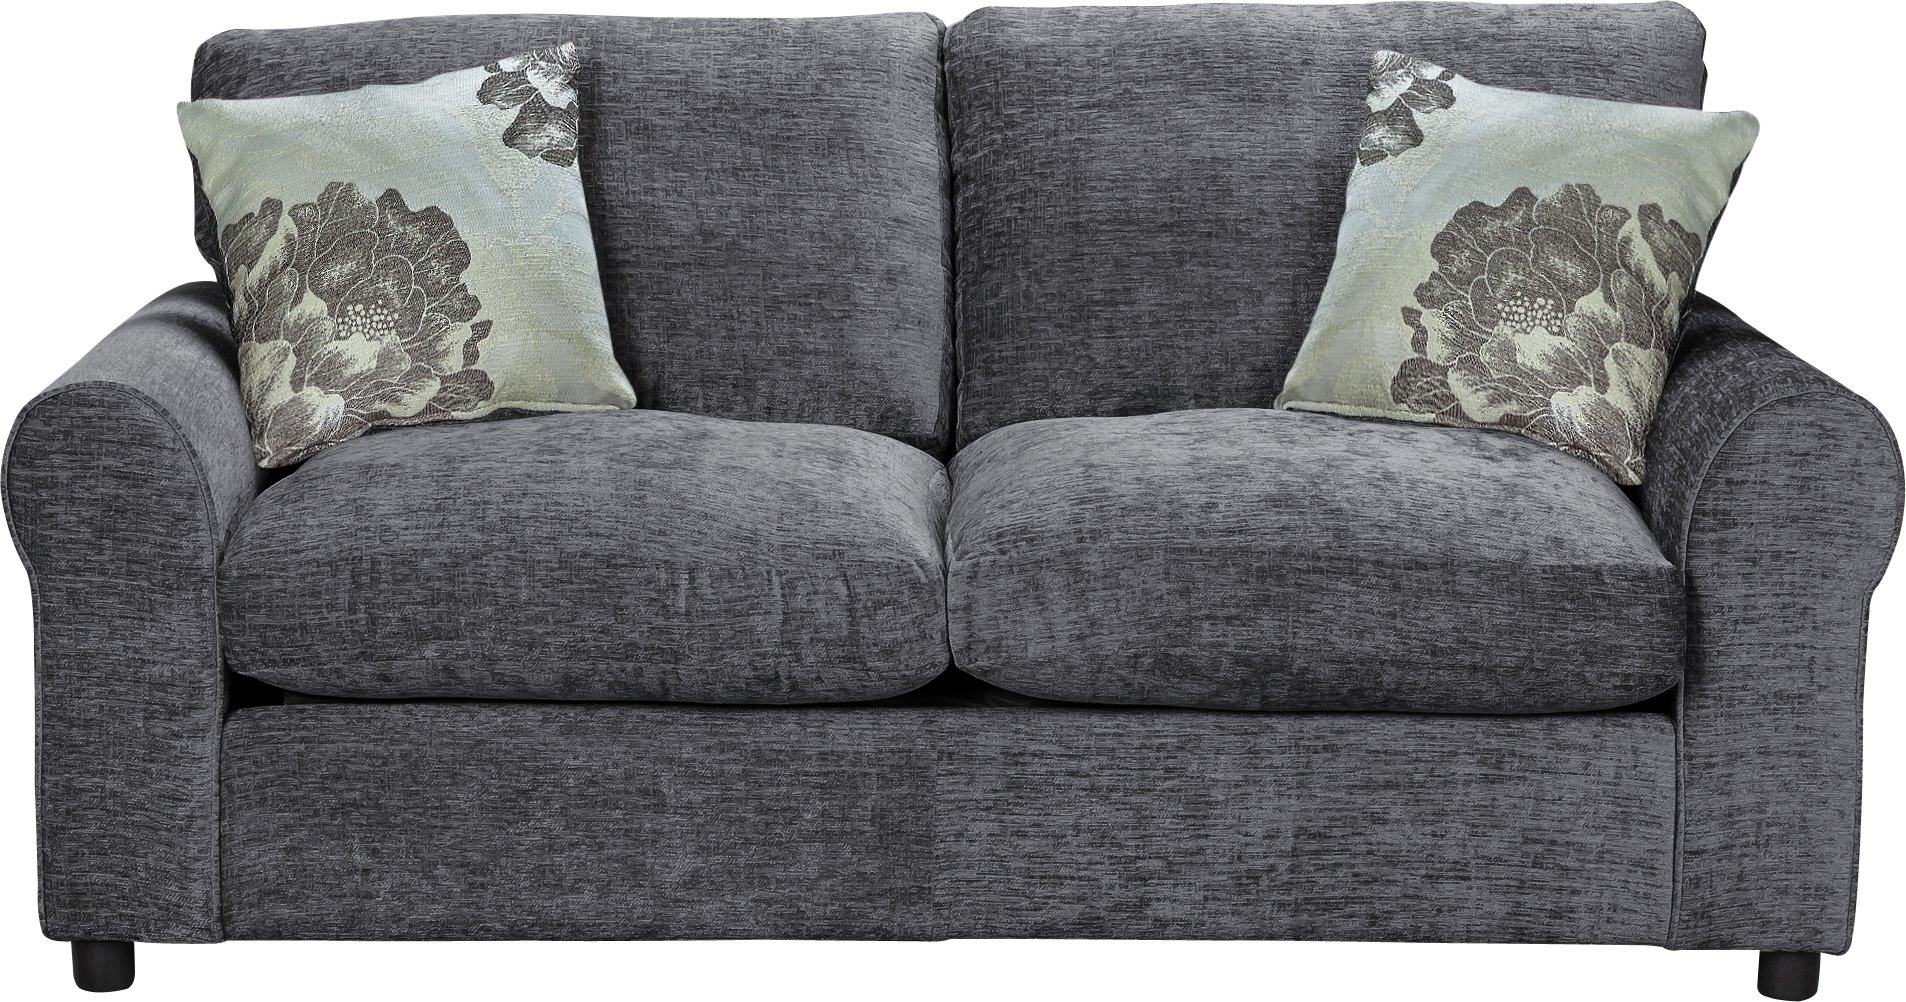 double sofa bed home tessa fabric sofa bed - charcoal NGKBNIY